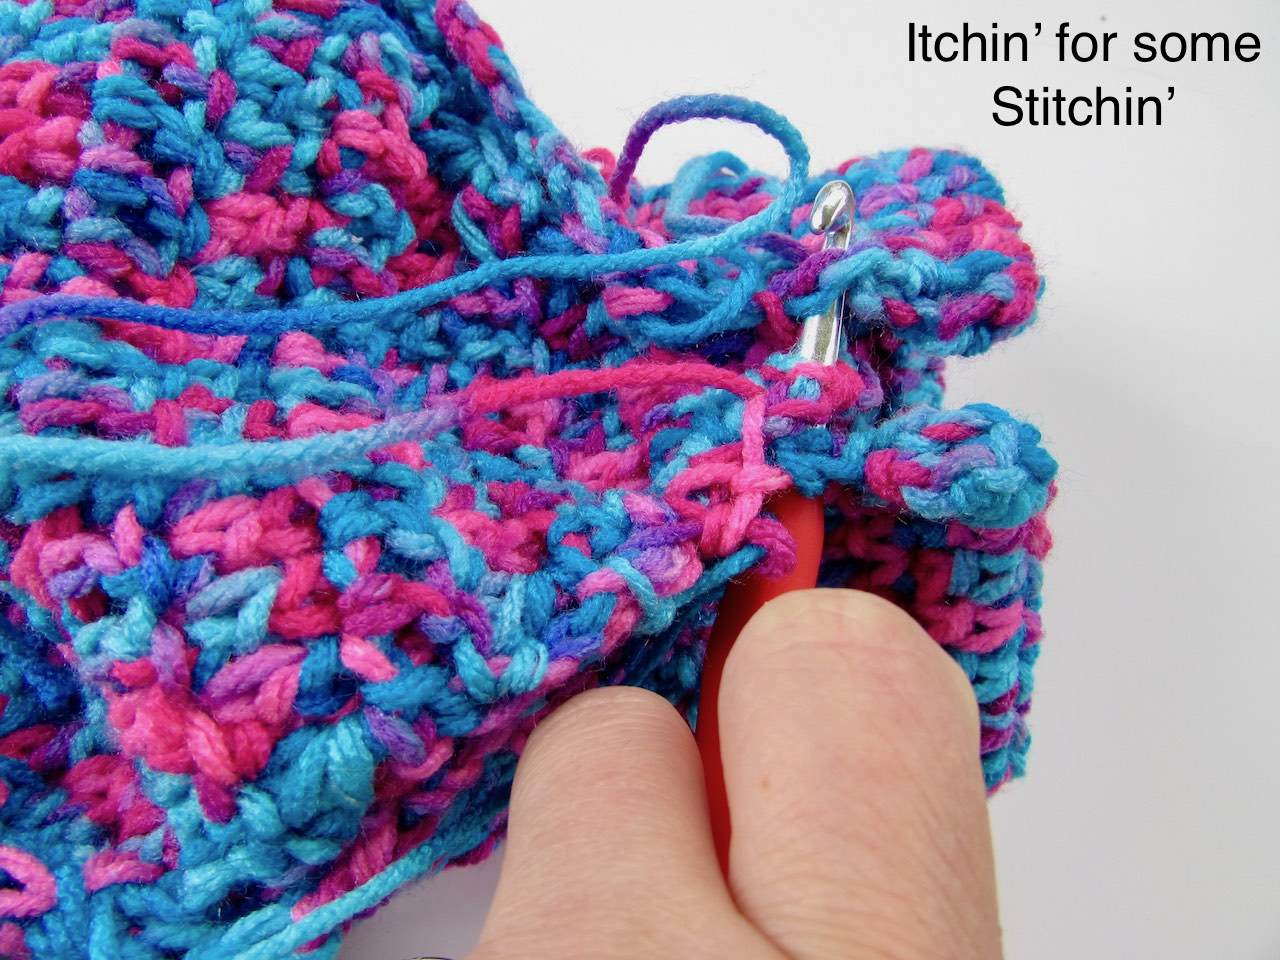 Ruffled Small Dog Coat Pattern by www.itchinforsomestitchin.com